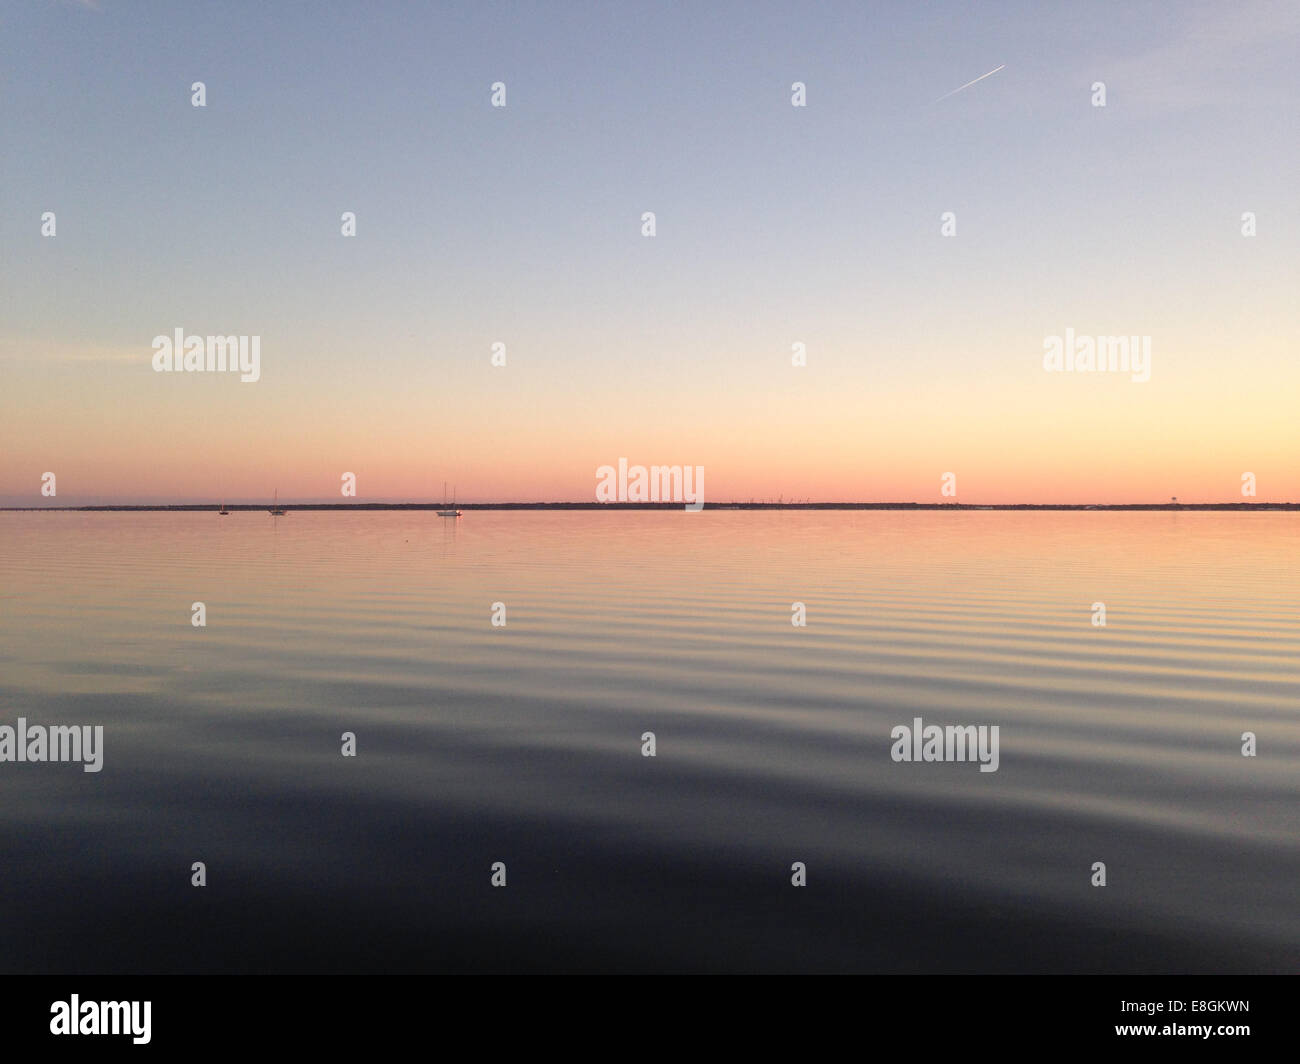 USA, Florida, St. Johns County, St. Augustine, Still water at sunset - Stock Image